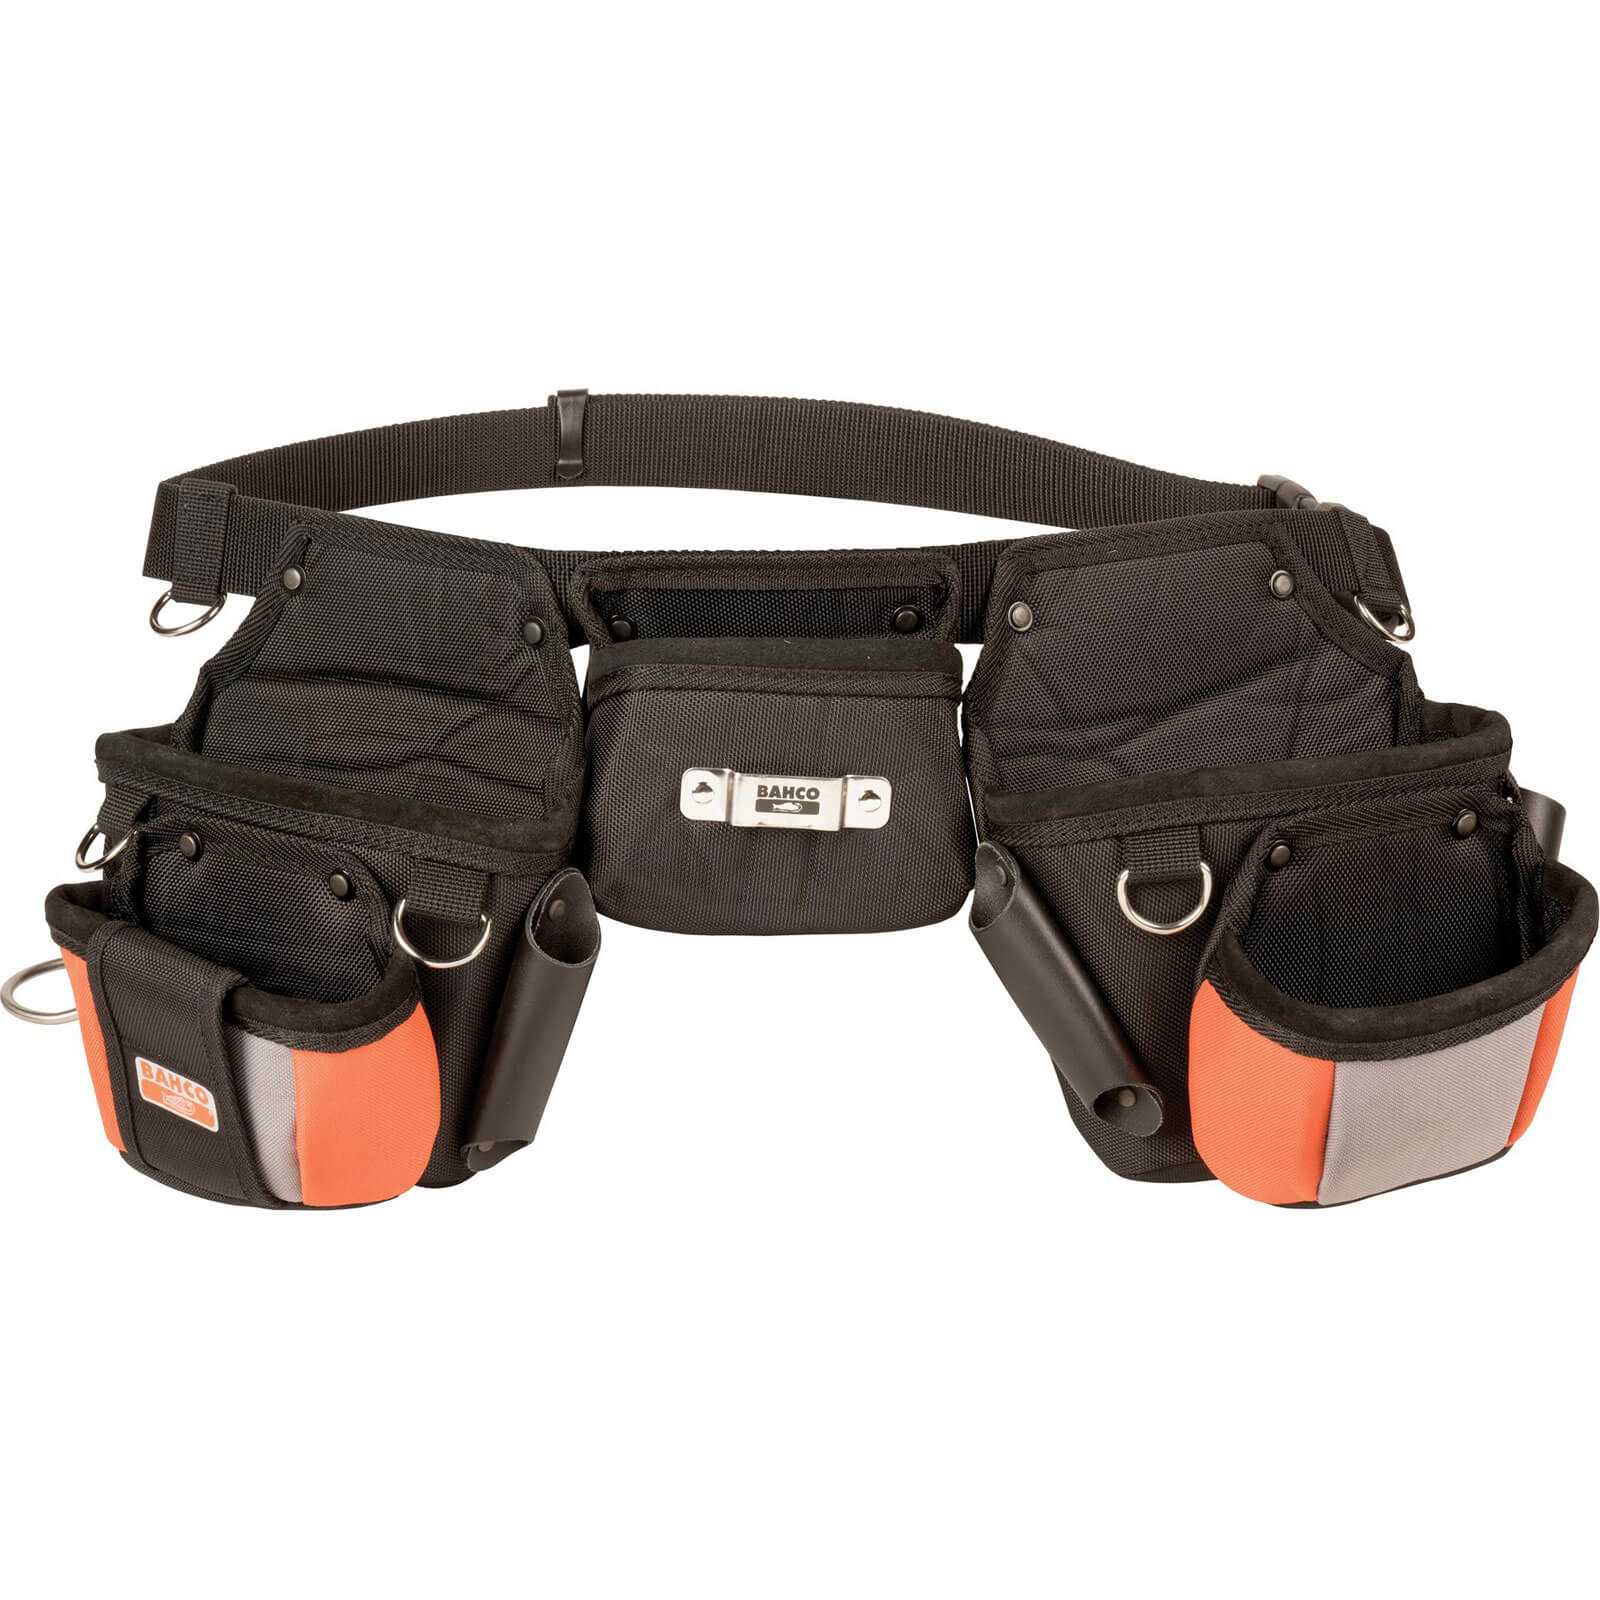 Bahco 3 Pouches Tool Belt